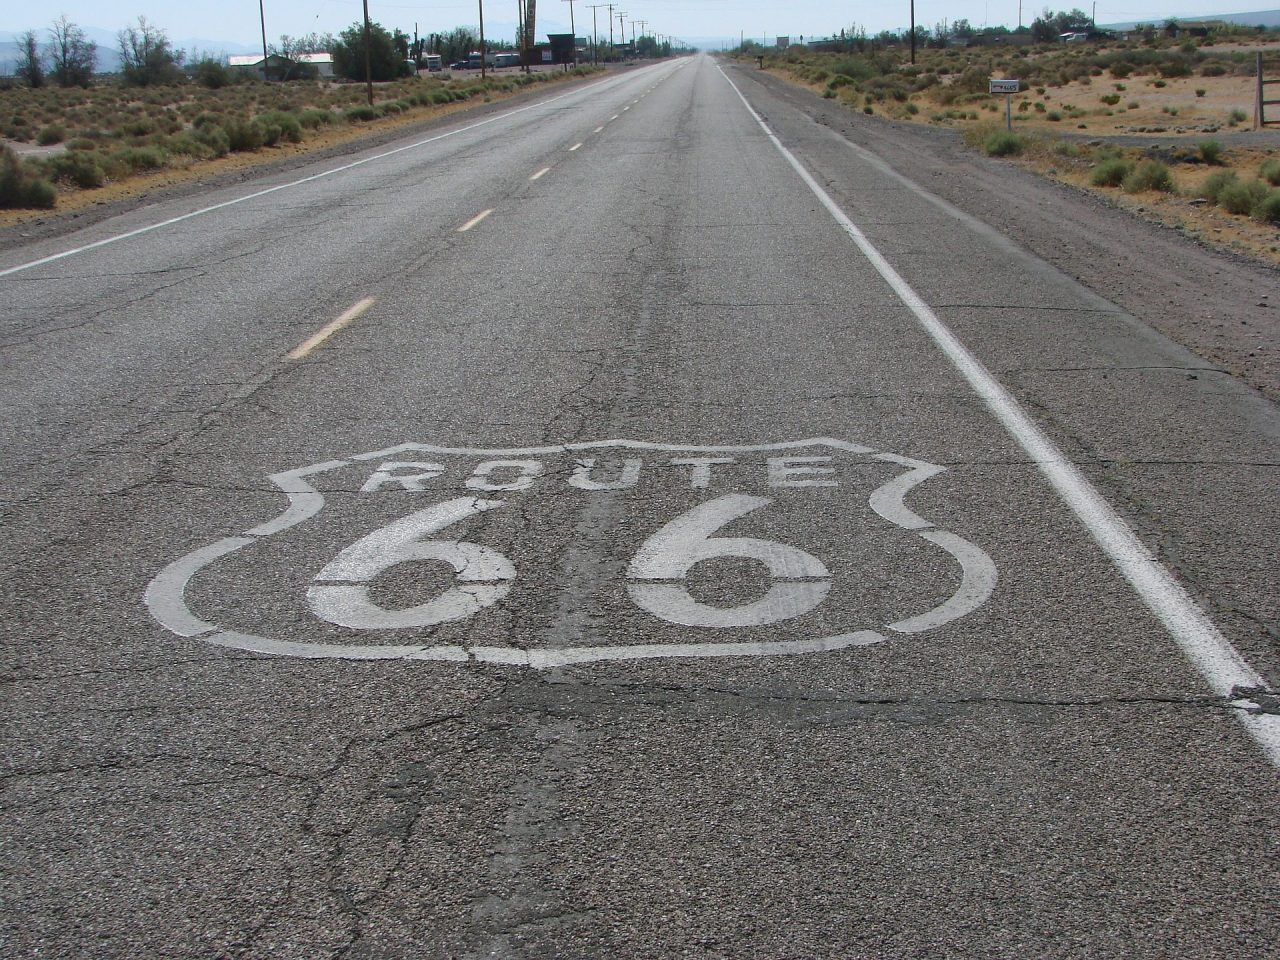 Favorite Places To Stop On Route 66